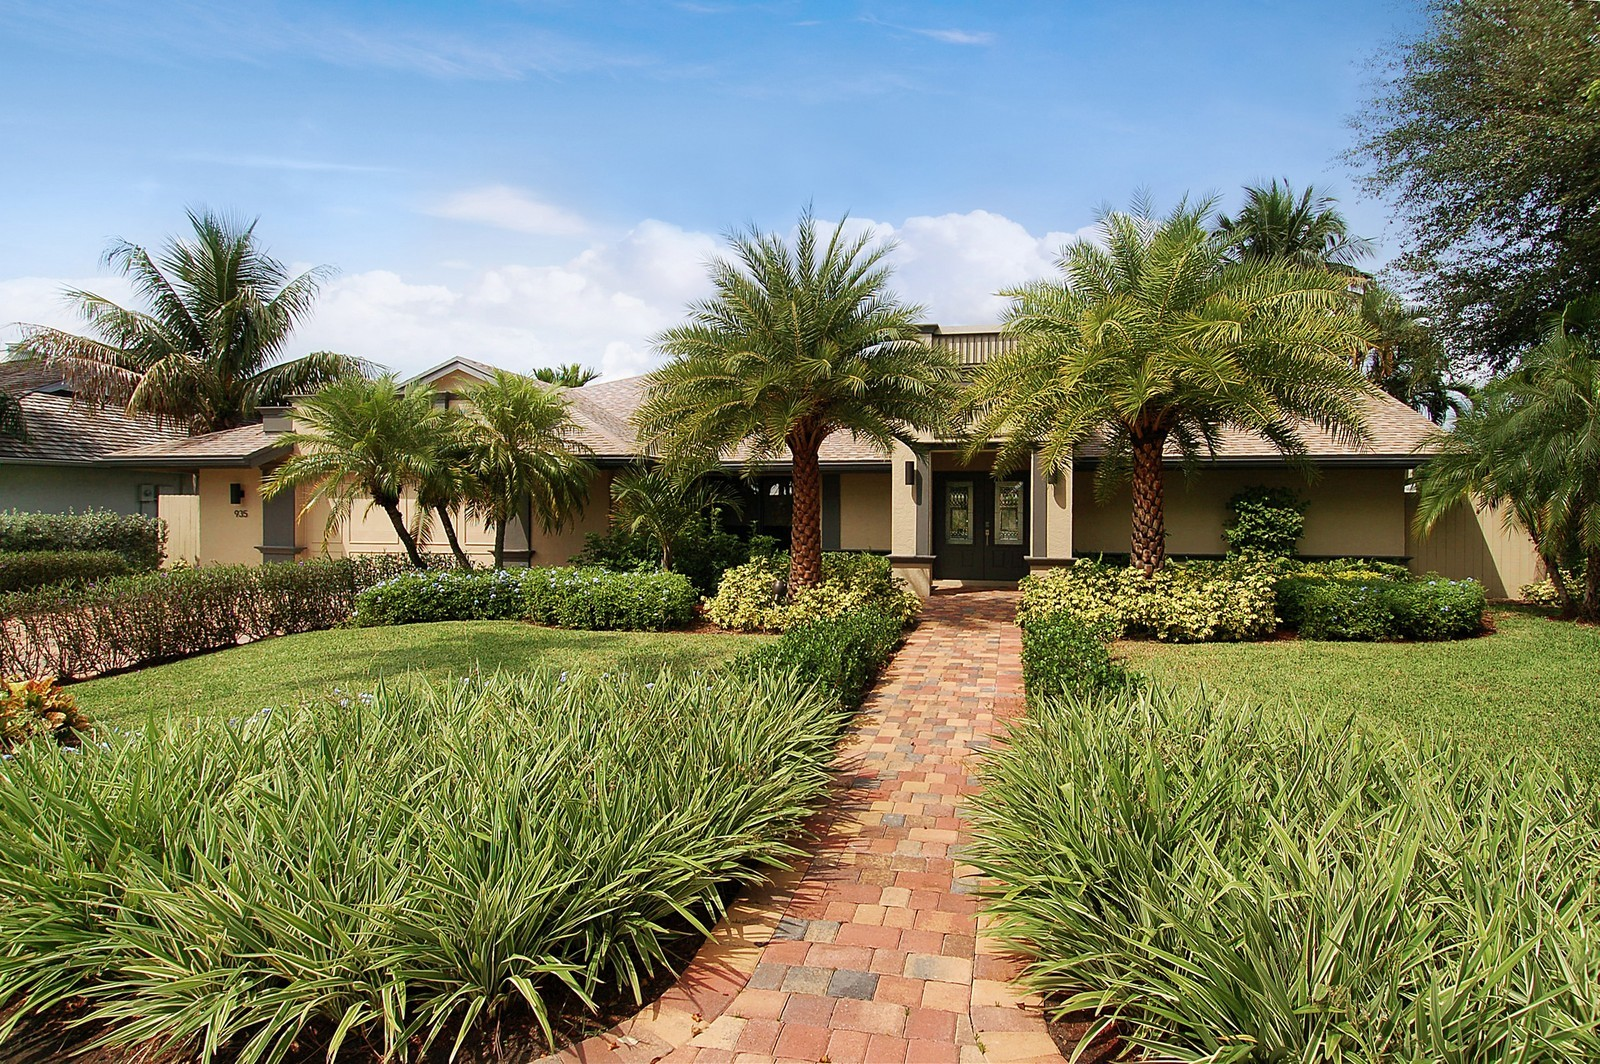 Real Estate Photography - 935 Gardenia Dr, Delray Beach, FL, 33483 - Front View